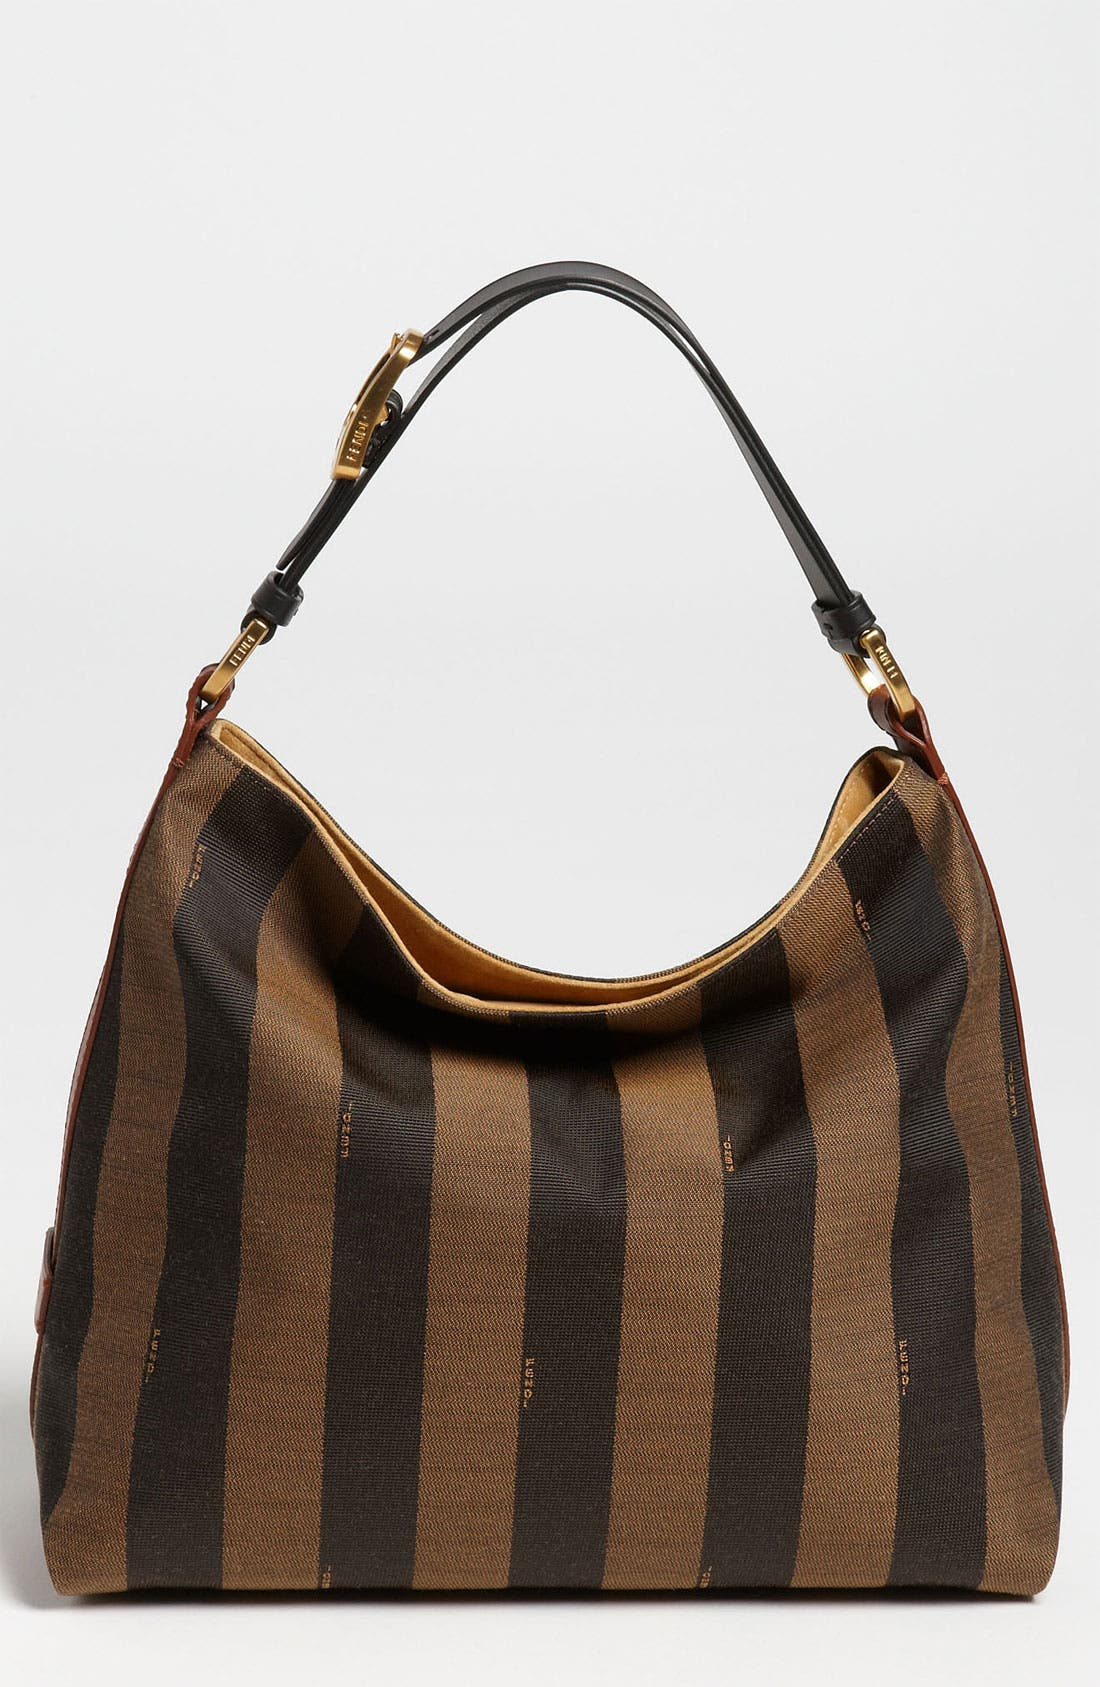 Main Image - Fendi 'Pequin - Small' Hobo